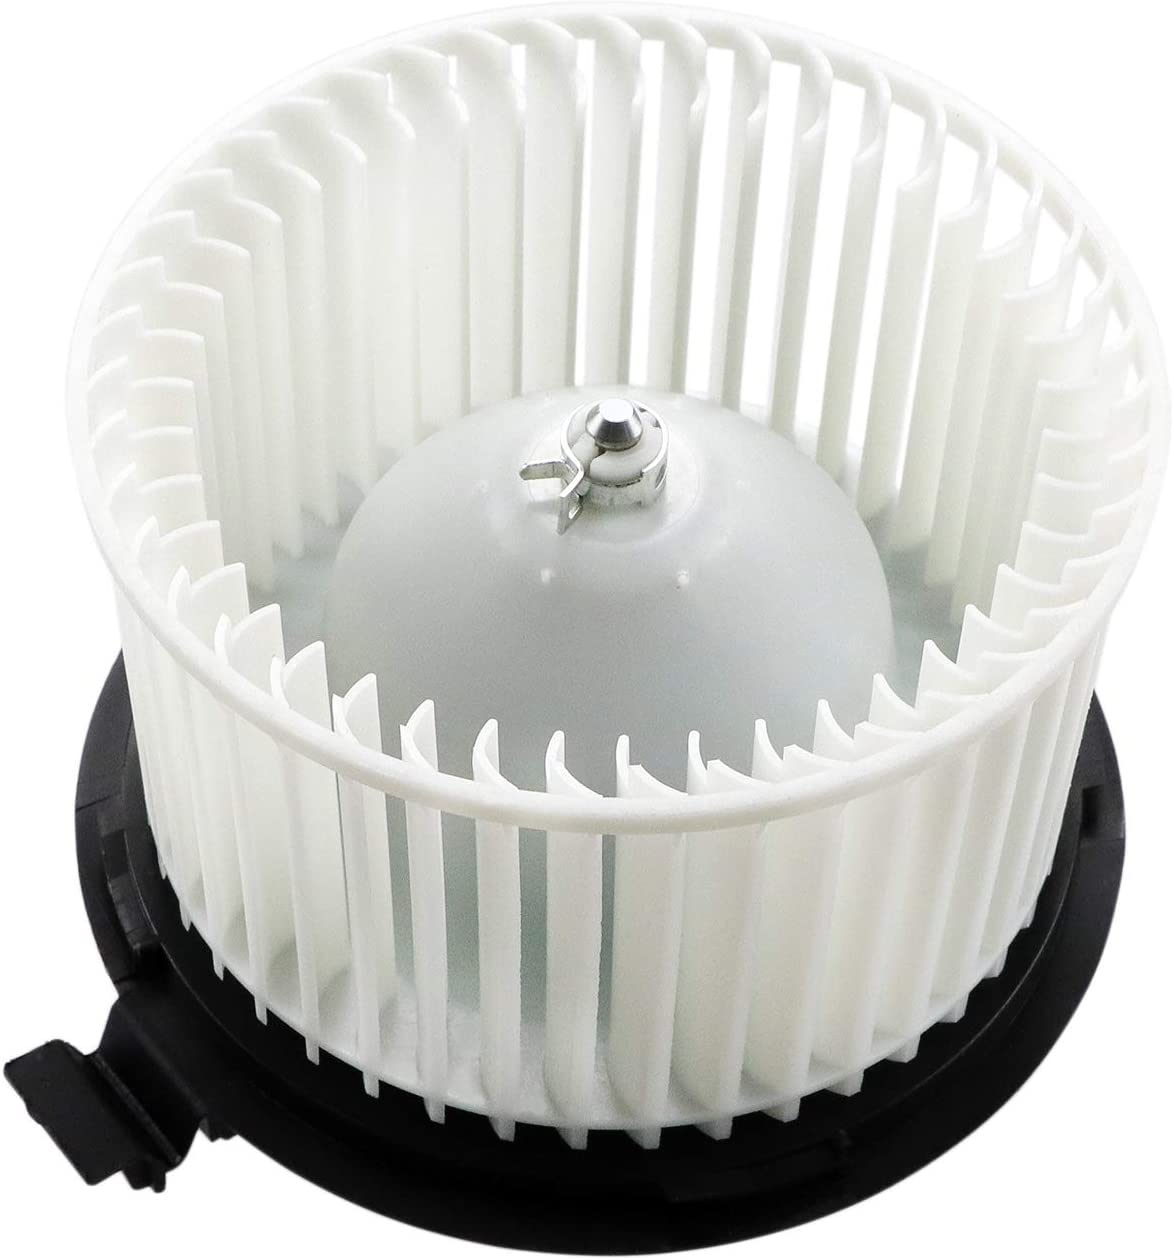 Youxmoto HVAC Heater Blower Motor Assembly with Wheel Fan Cage Air Conditioning AC Blower Motor Replaces 700287 75879 PM9376 fit for 2007 2008 2009 2010 2011 Nissan Versa